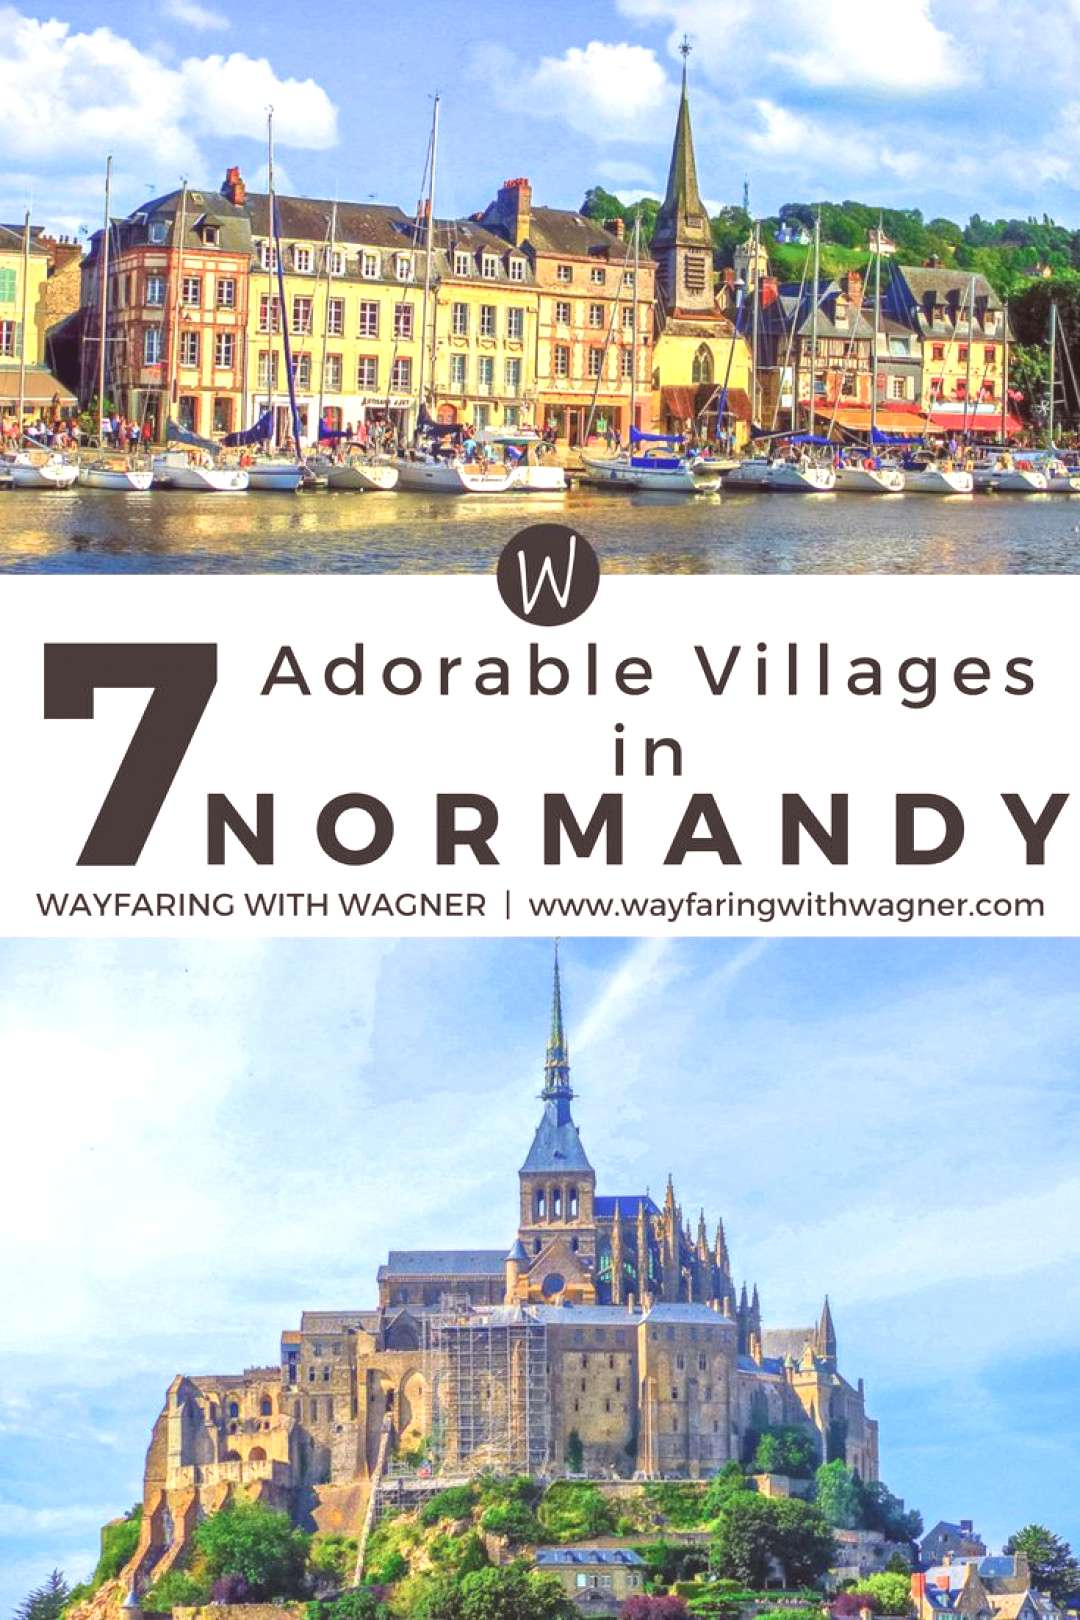 7 Adorable Villages in Normandy, France - Wayfaring With Wagner Explore these 7 adorable villages i